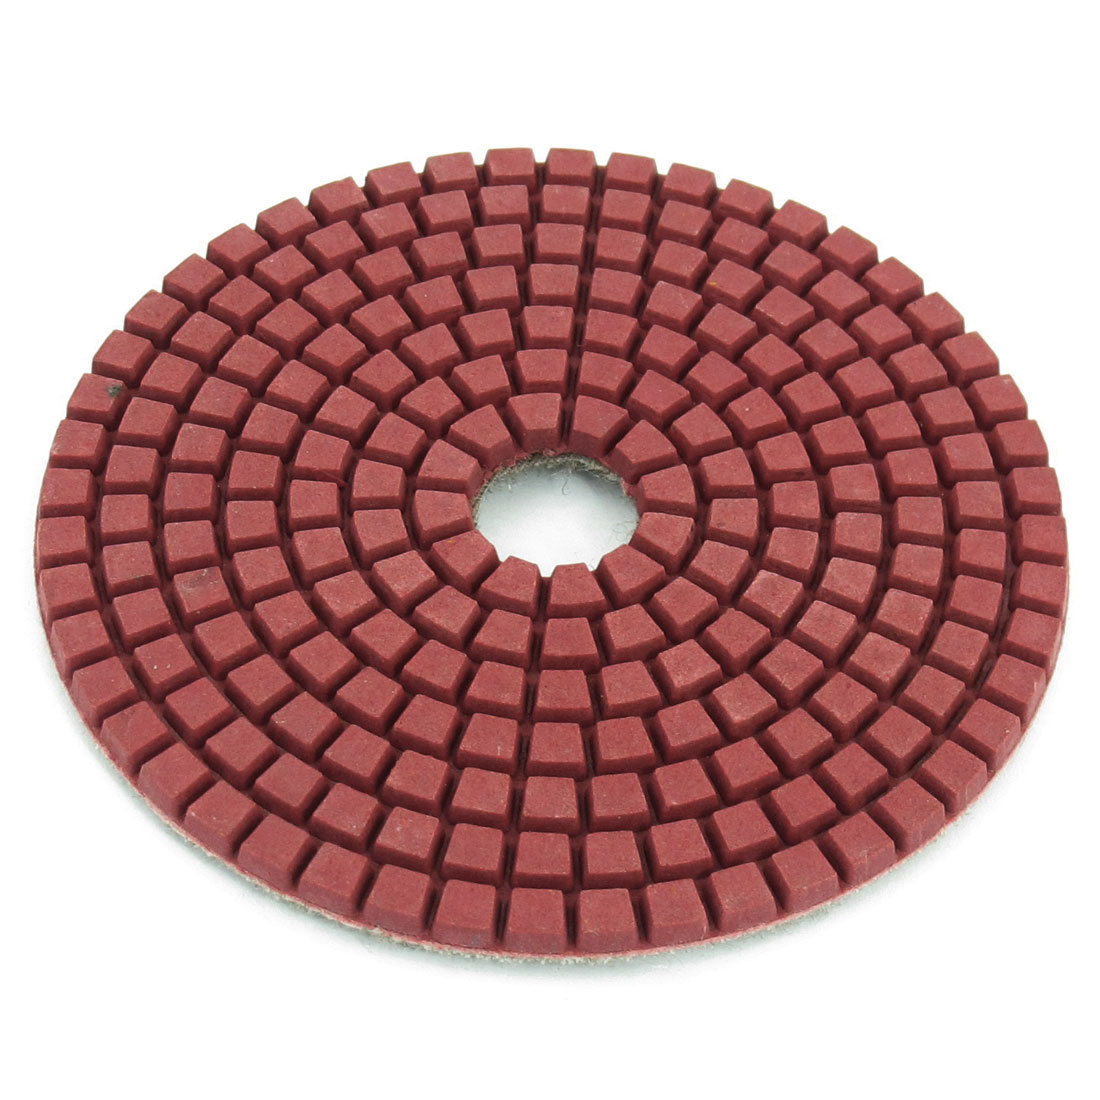 Rosy Brown Disc Shaped 400 Grit Wet Dry Diamond Polishing Pad